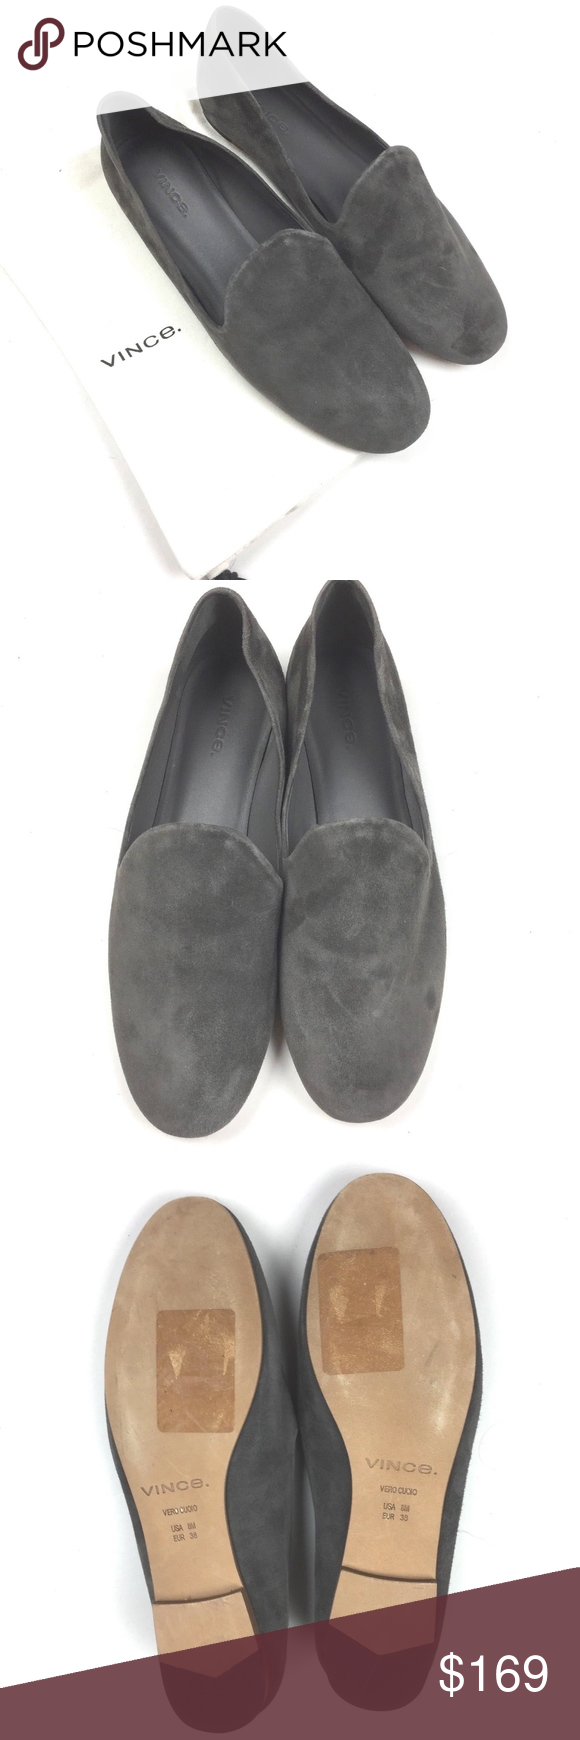 ce0a02f6afa Vince Milo Loafer Pewter Suede Gray with Dust Bag Elegant Vince Milo Loafer  Suede Gray